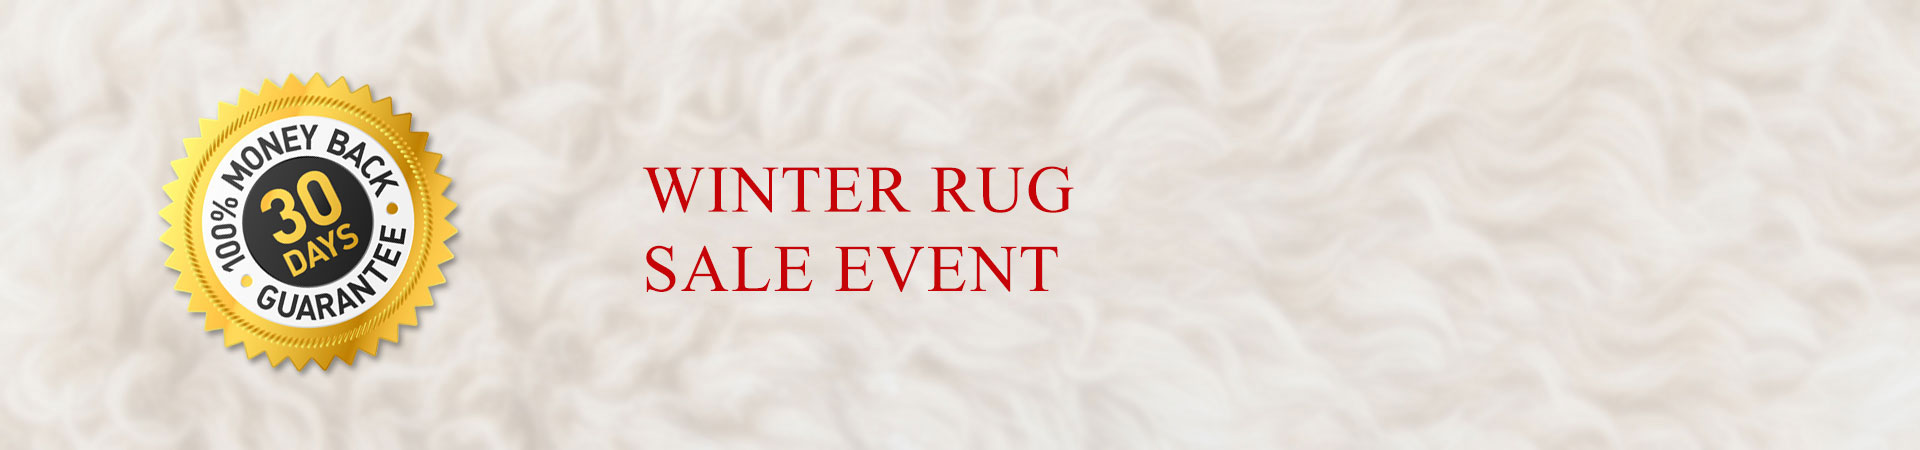 WINTER RUG SALE EVENT